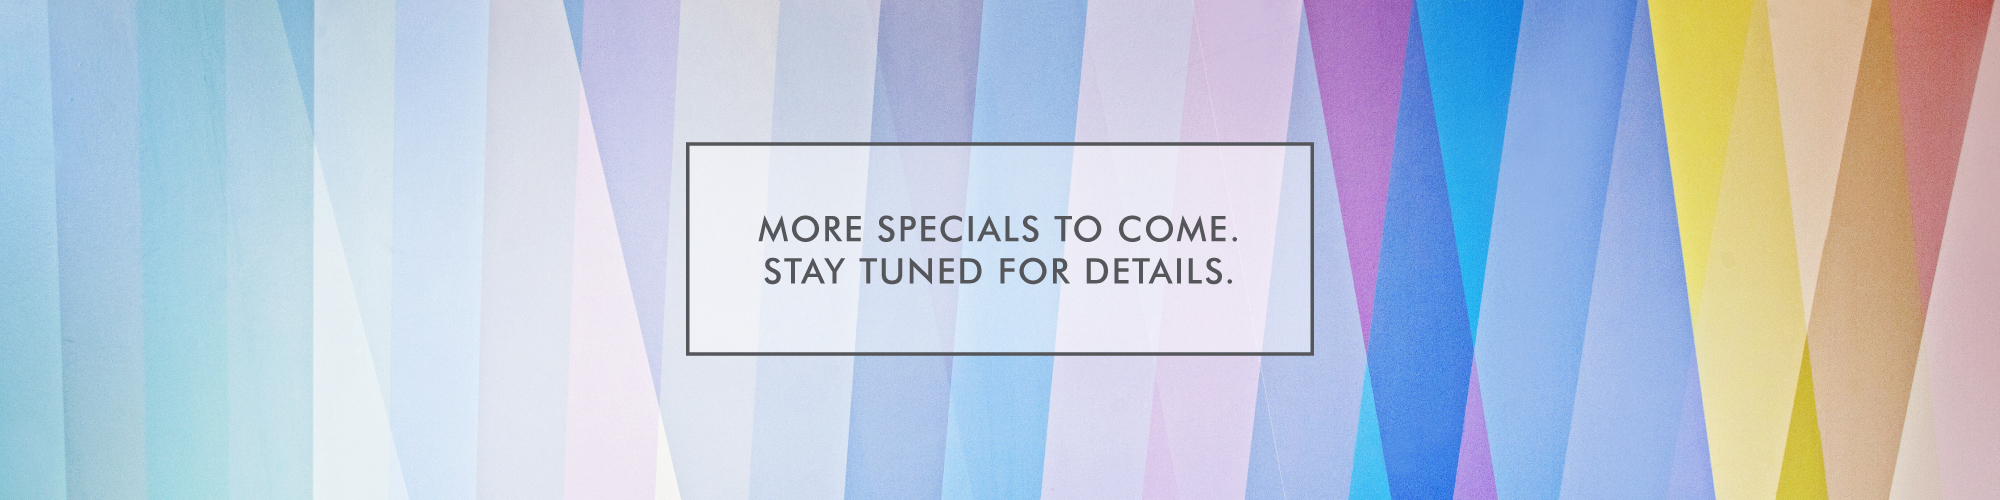 Specials_TO-COME_Banner